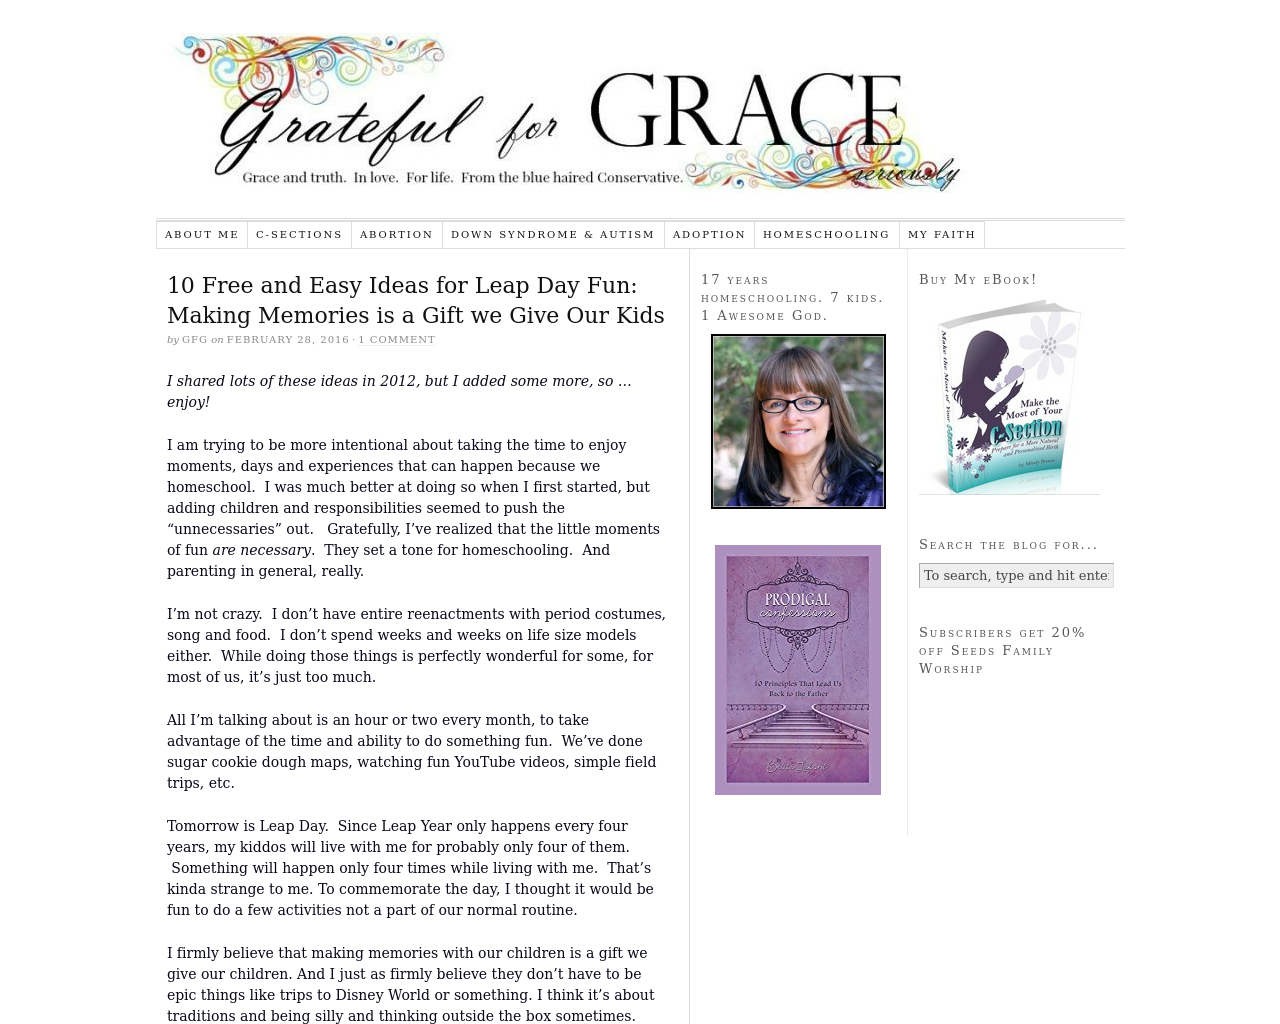 Grateful-for-Grace-Advertising-Reviews-Pricing